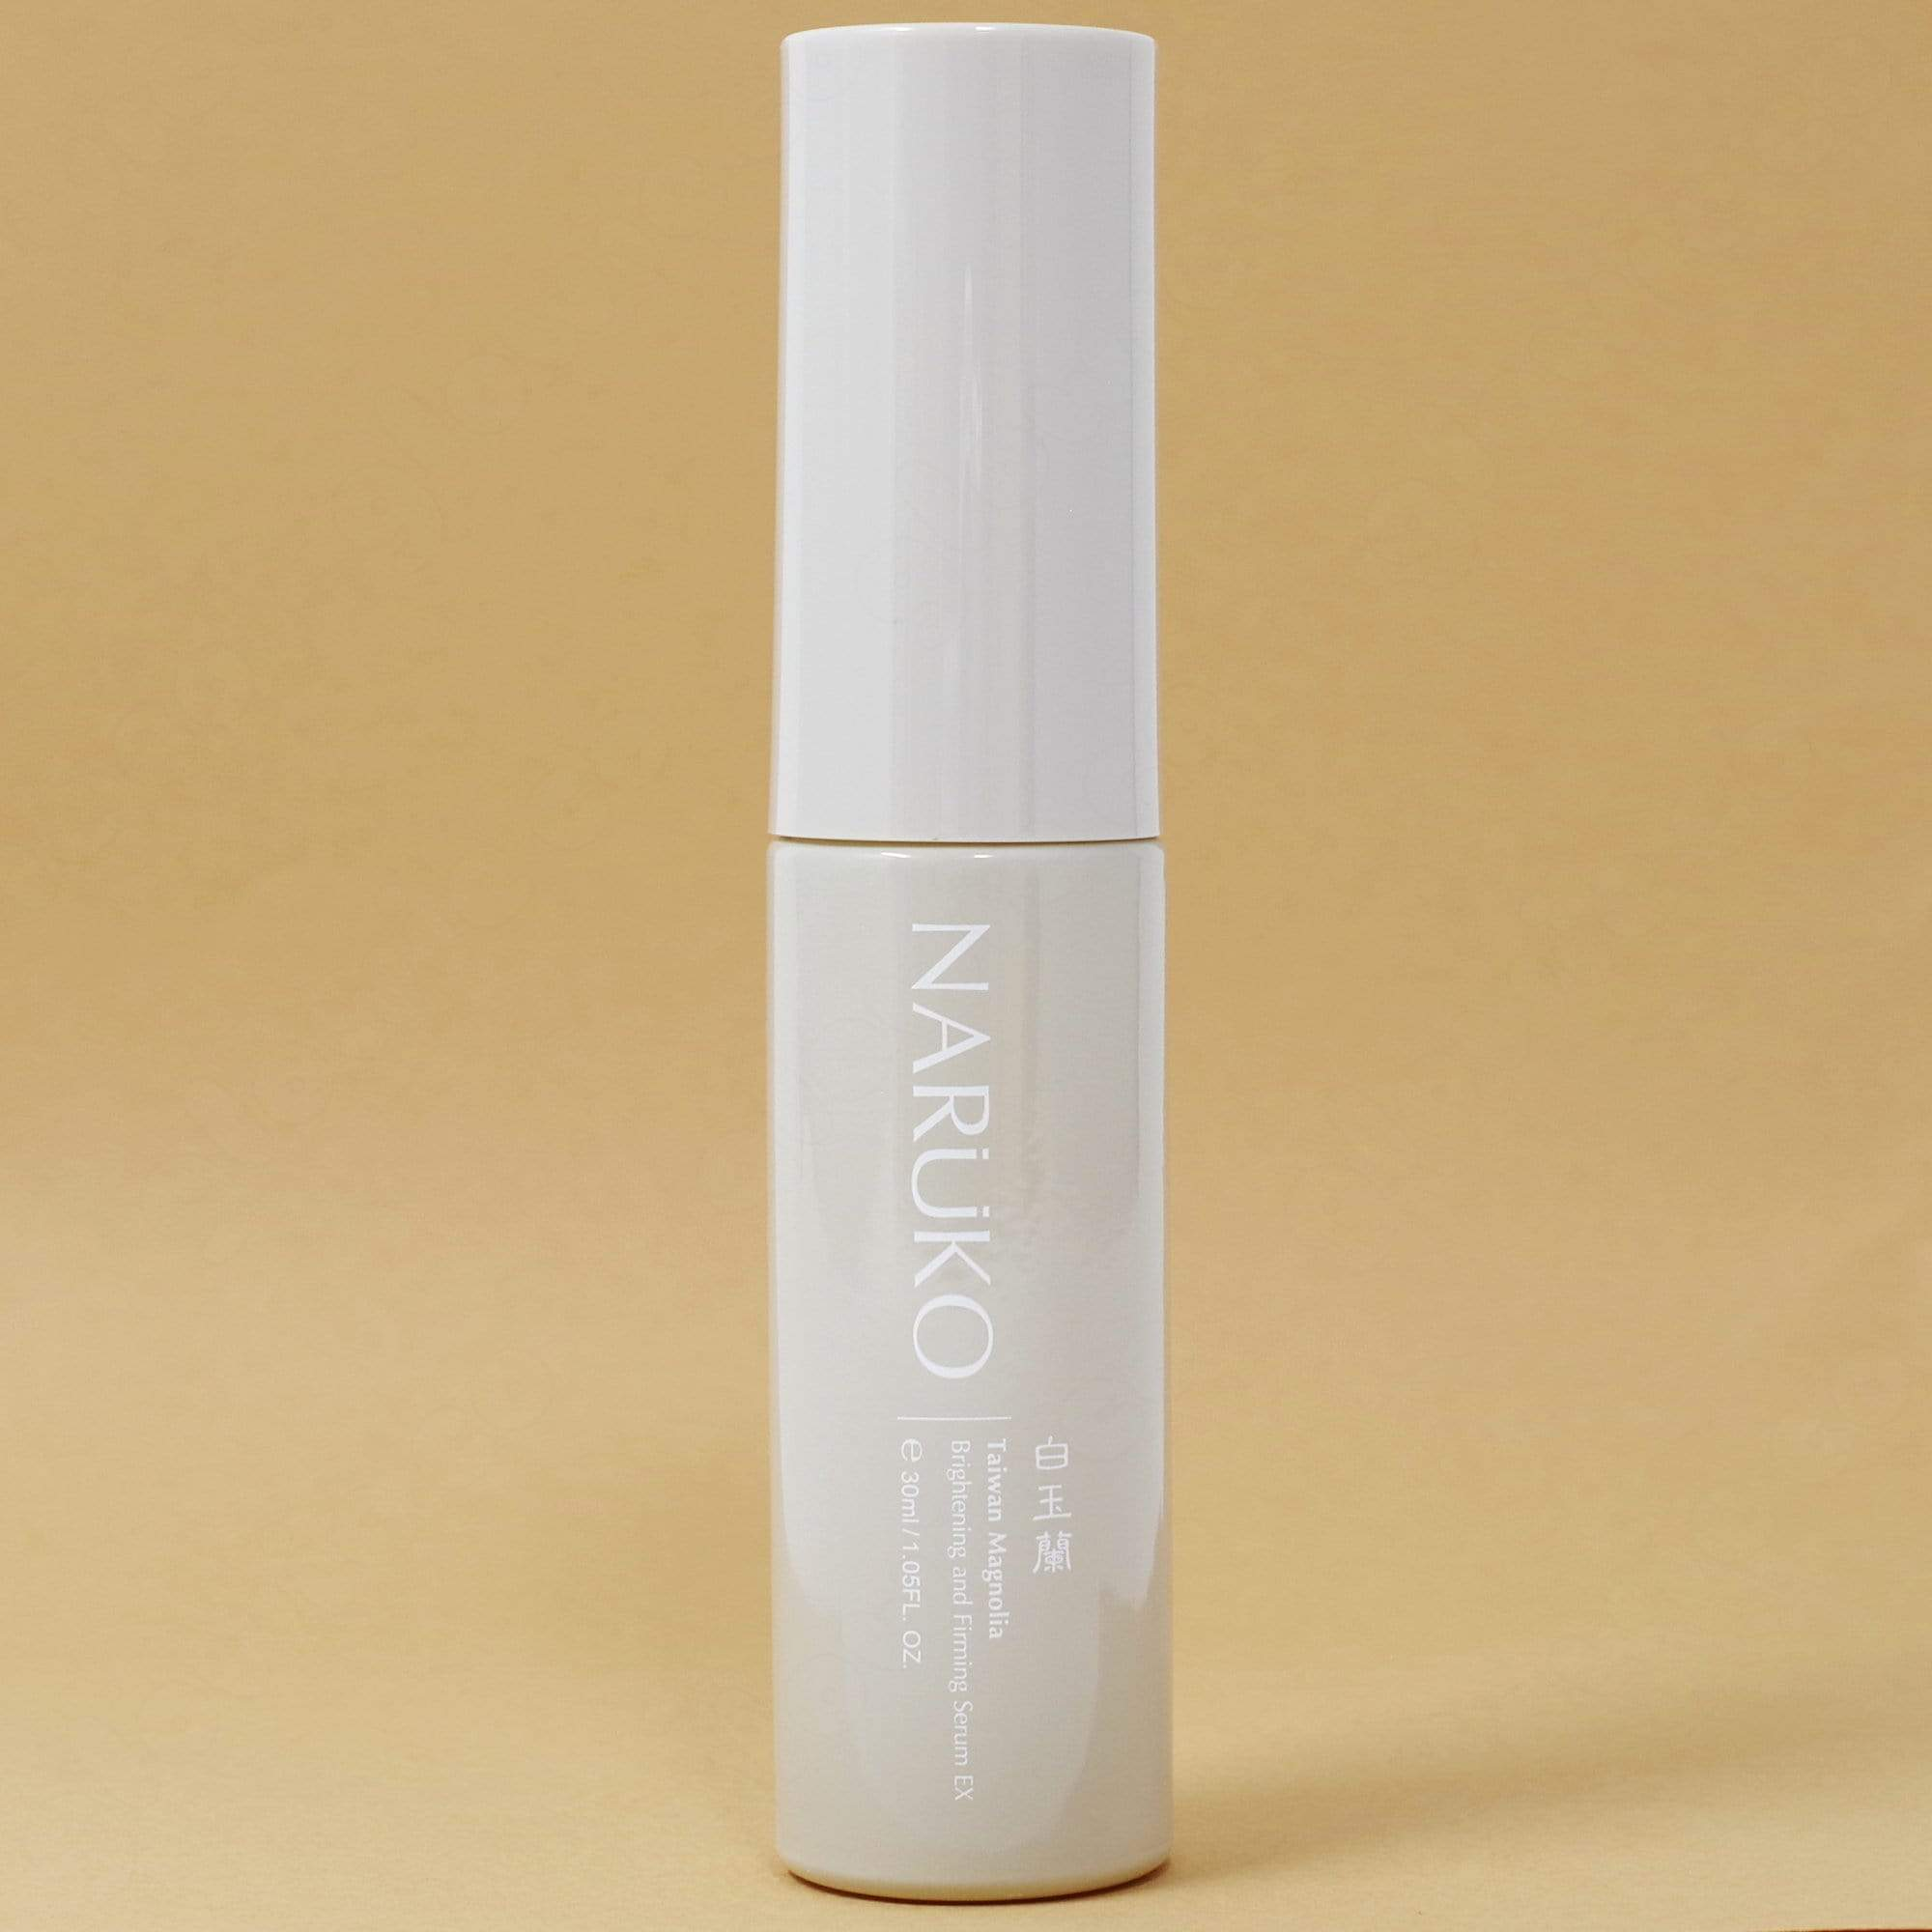 Naruko Taiwan Magnolia Brightening and Firming Serum